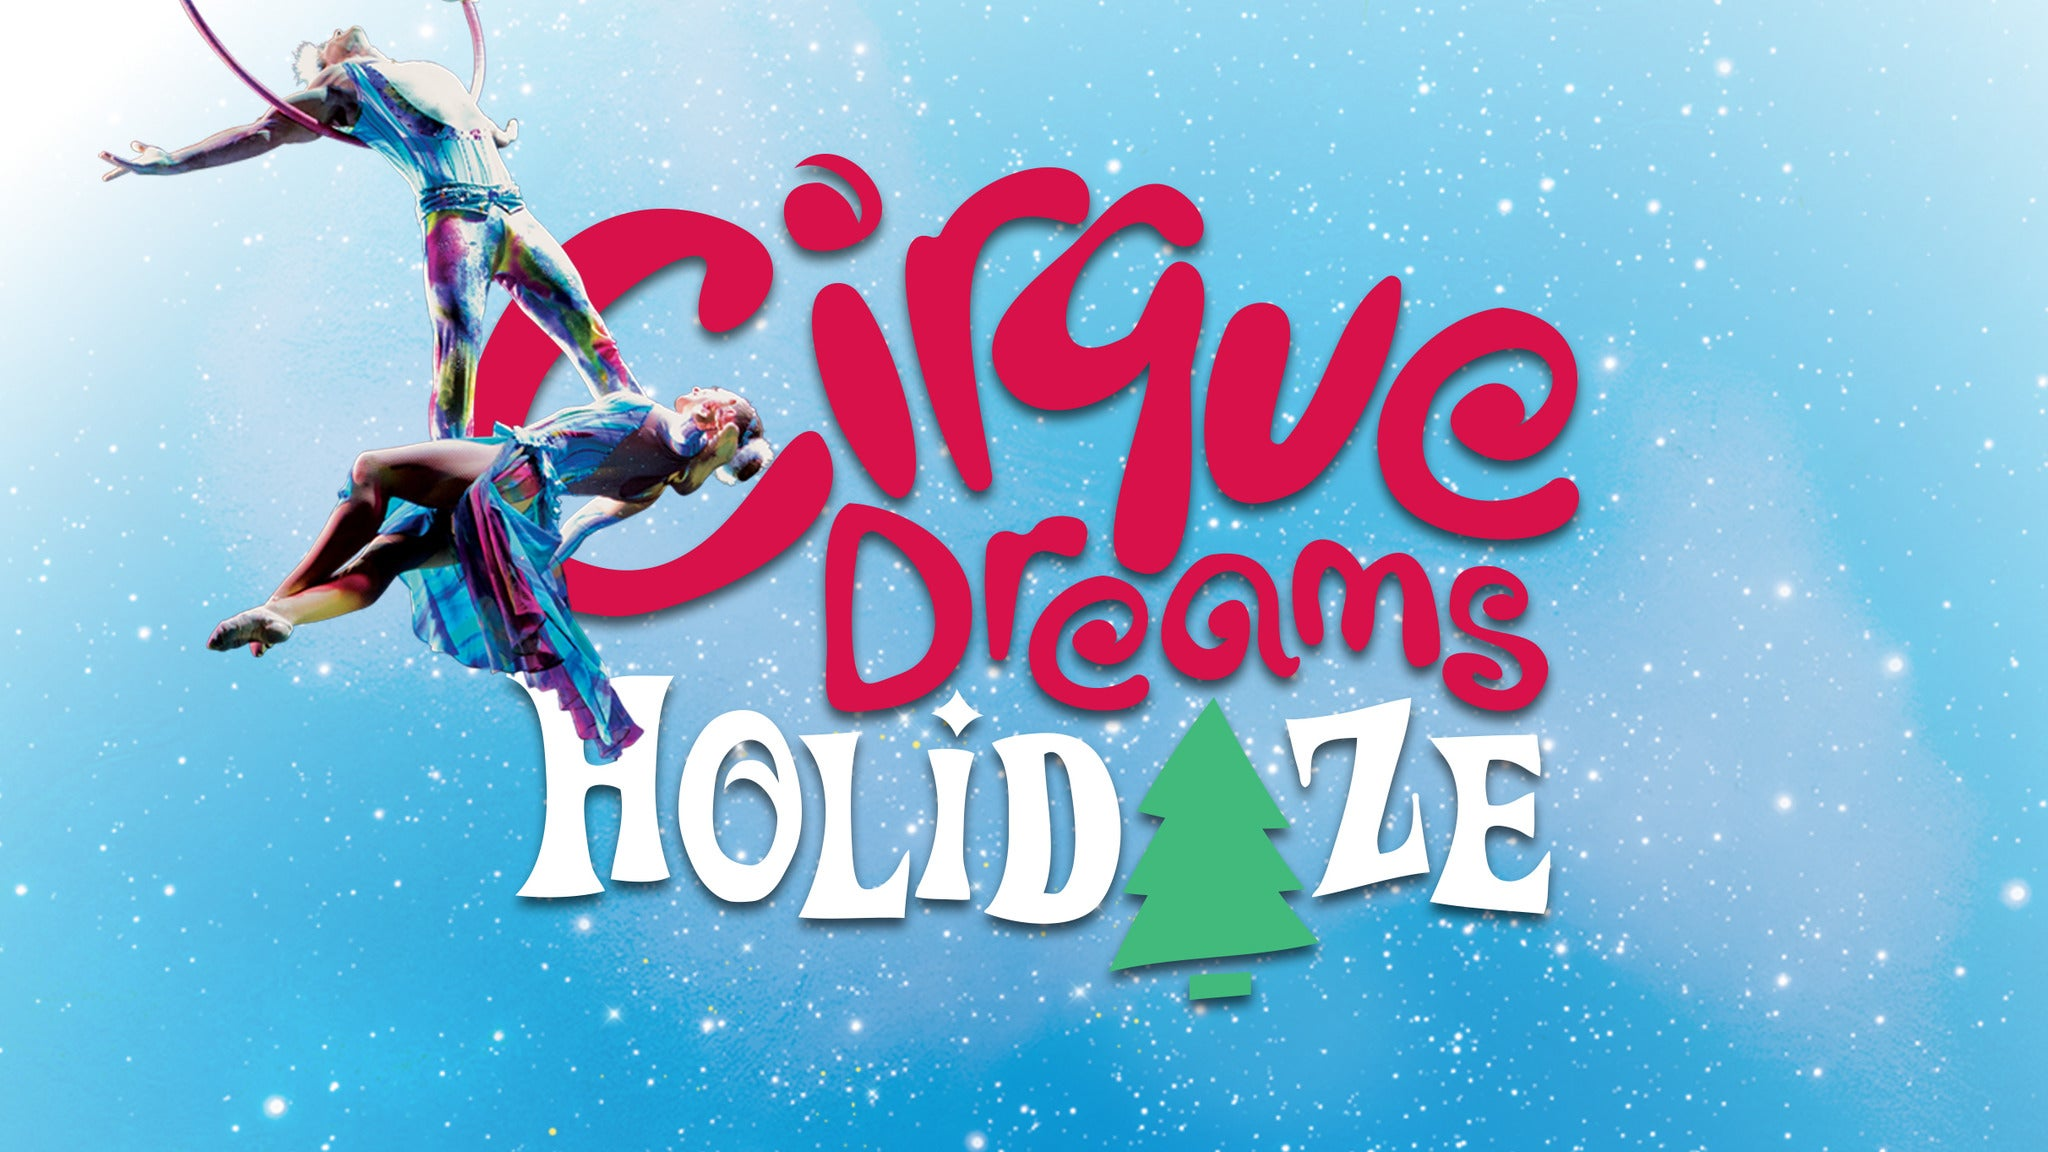 Cirque Dreams Holidaze at Luther F Carson Four Rivers Center